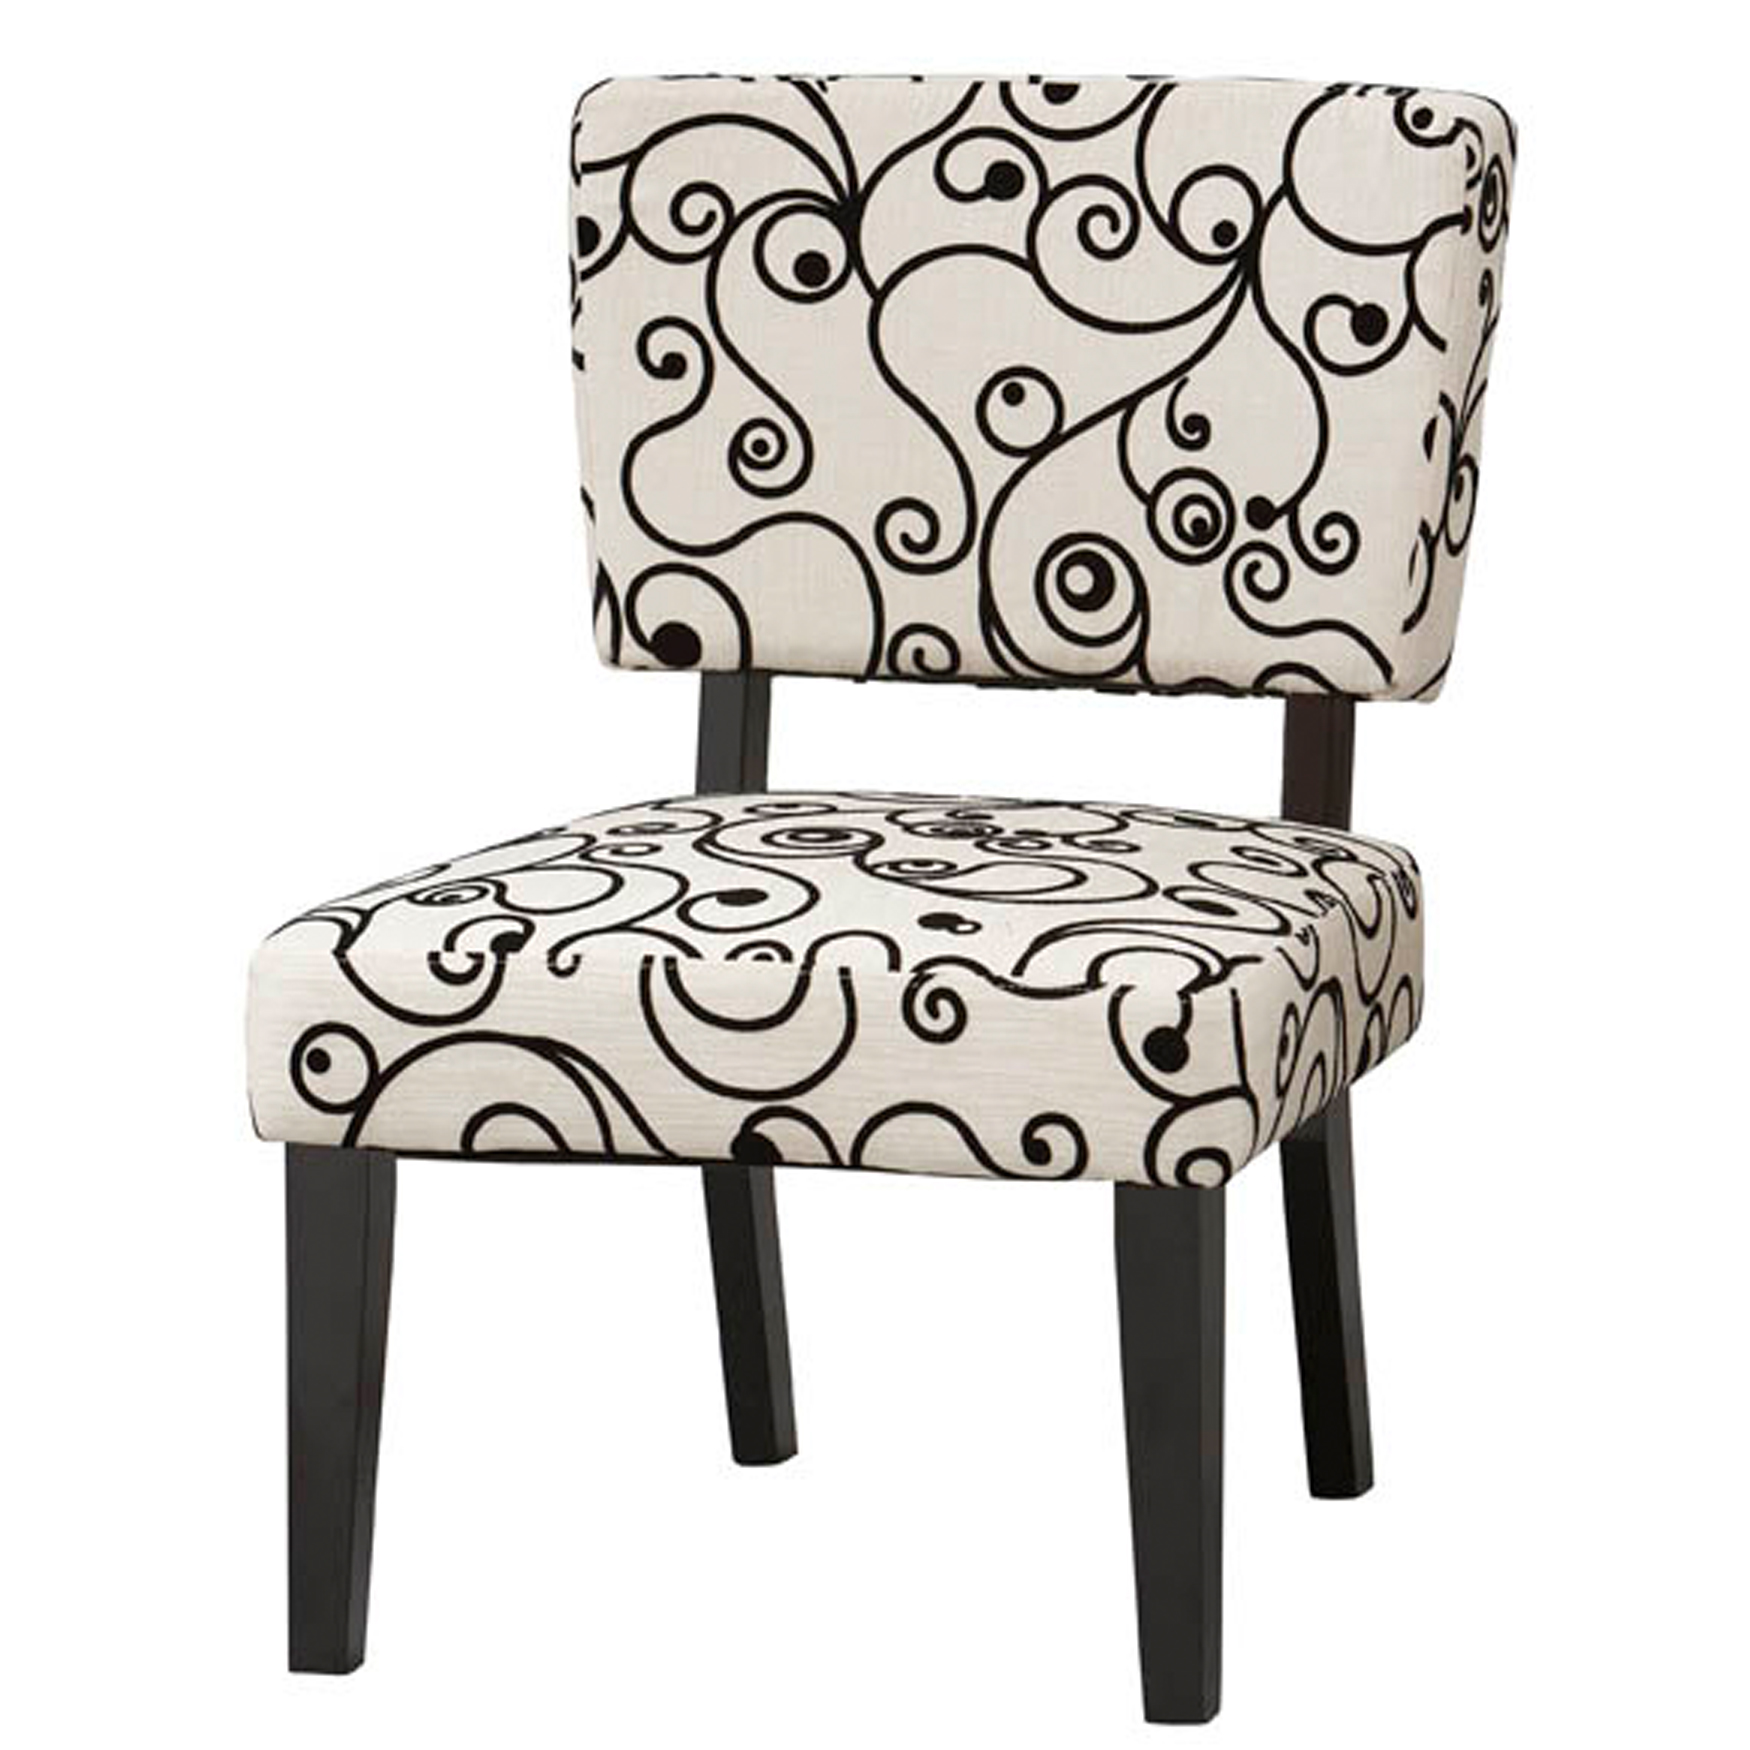 Taylor Accent Chair - White Black Circles, WHITE BLACK